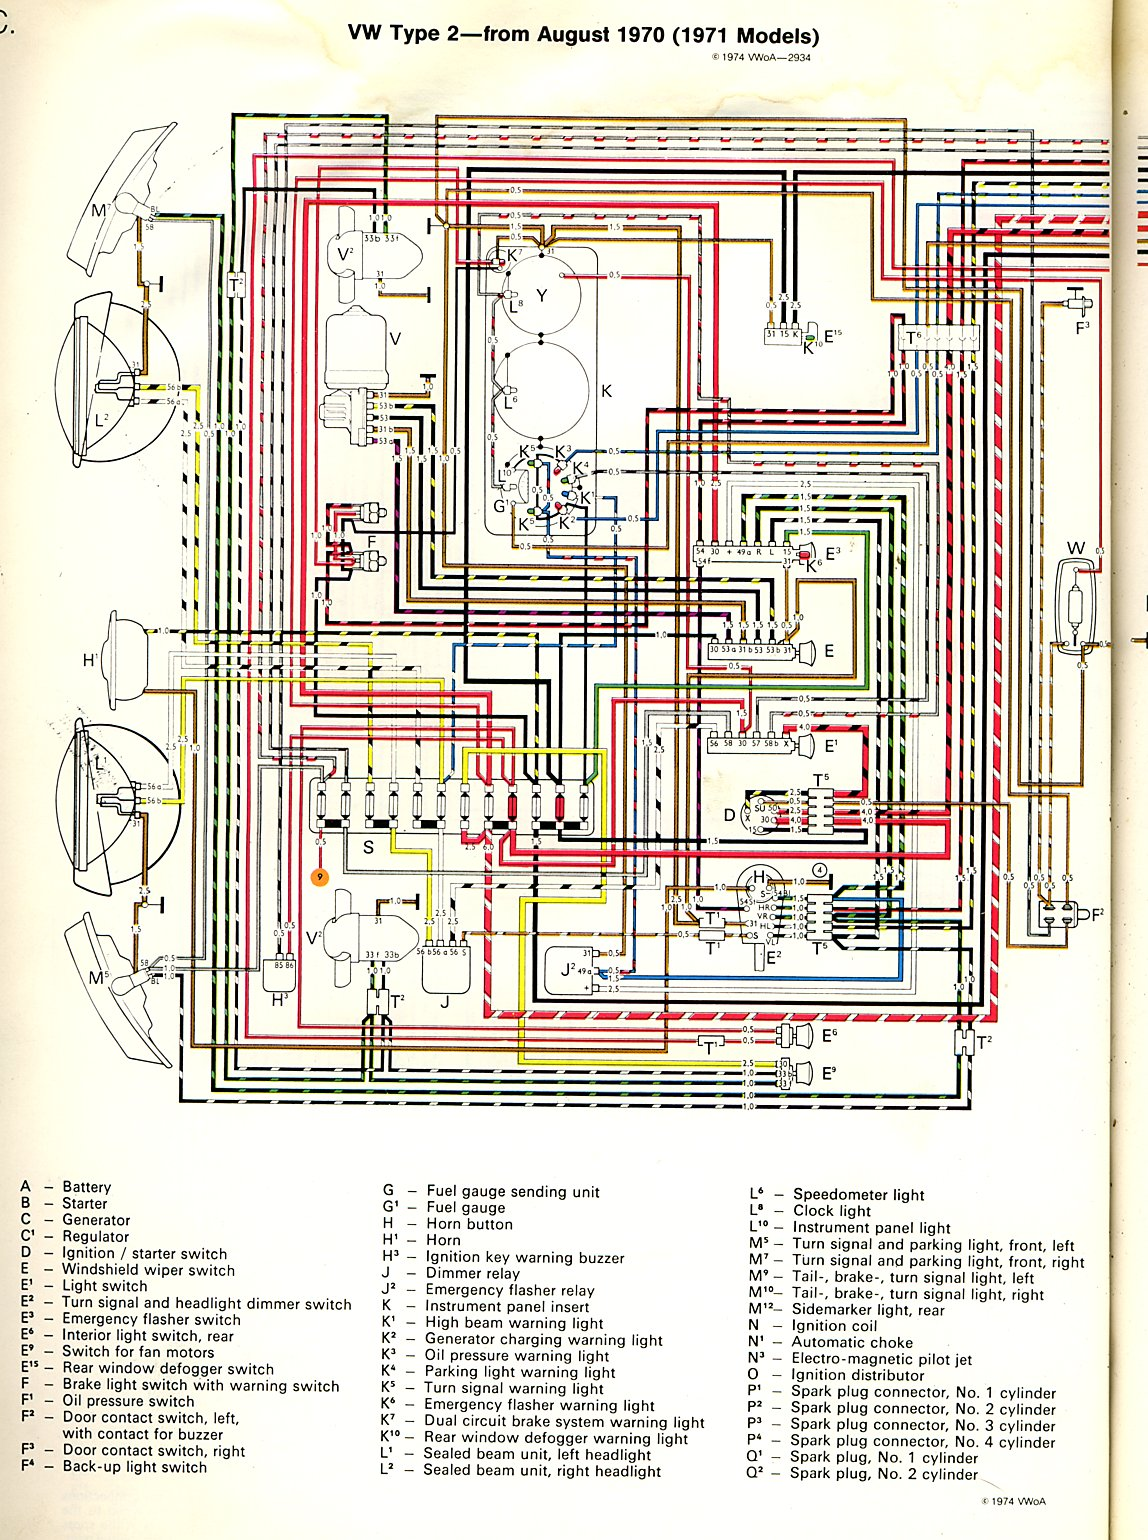 2000 Jetta Door Wiring Diagram Library Diagrams For 2006 Vw 1970 Fuse Online Schematics Rh Delvato Co Volkswagen Box